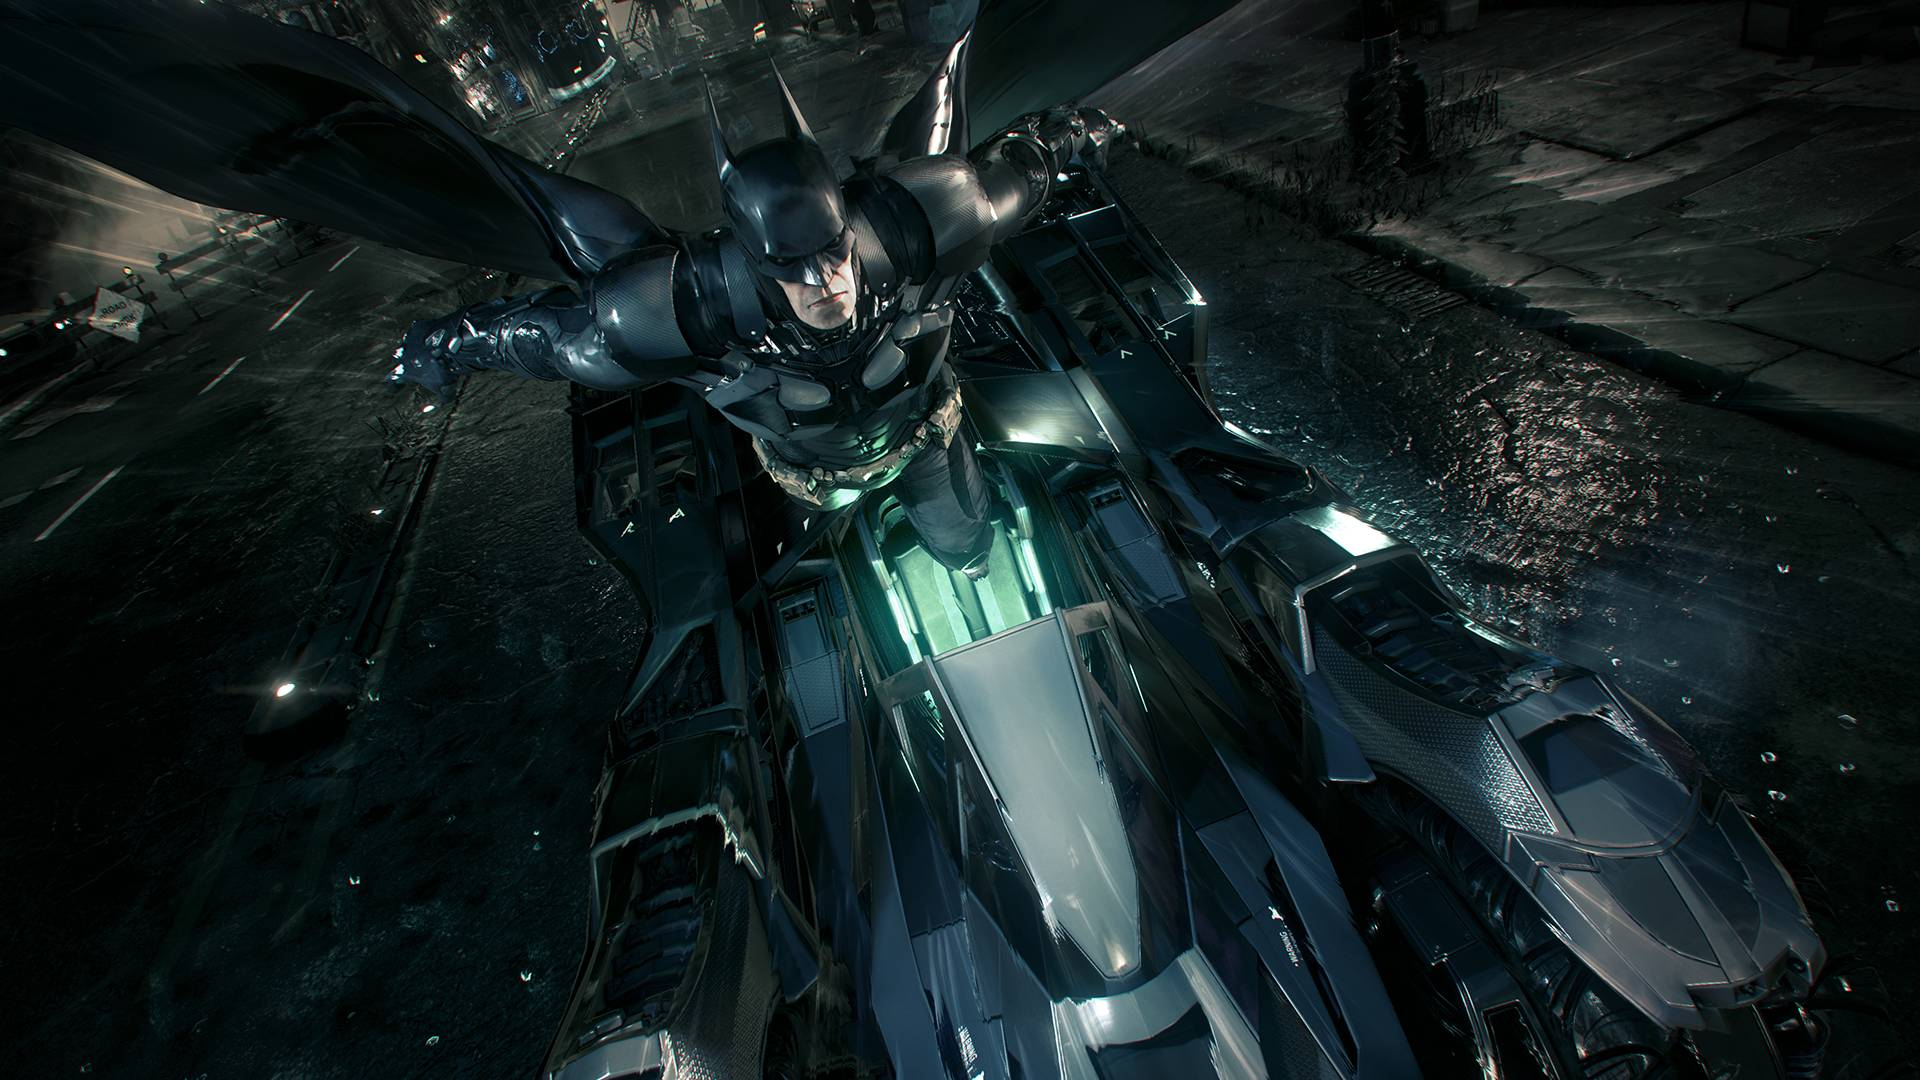 WB continues to tease a new Batman game